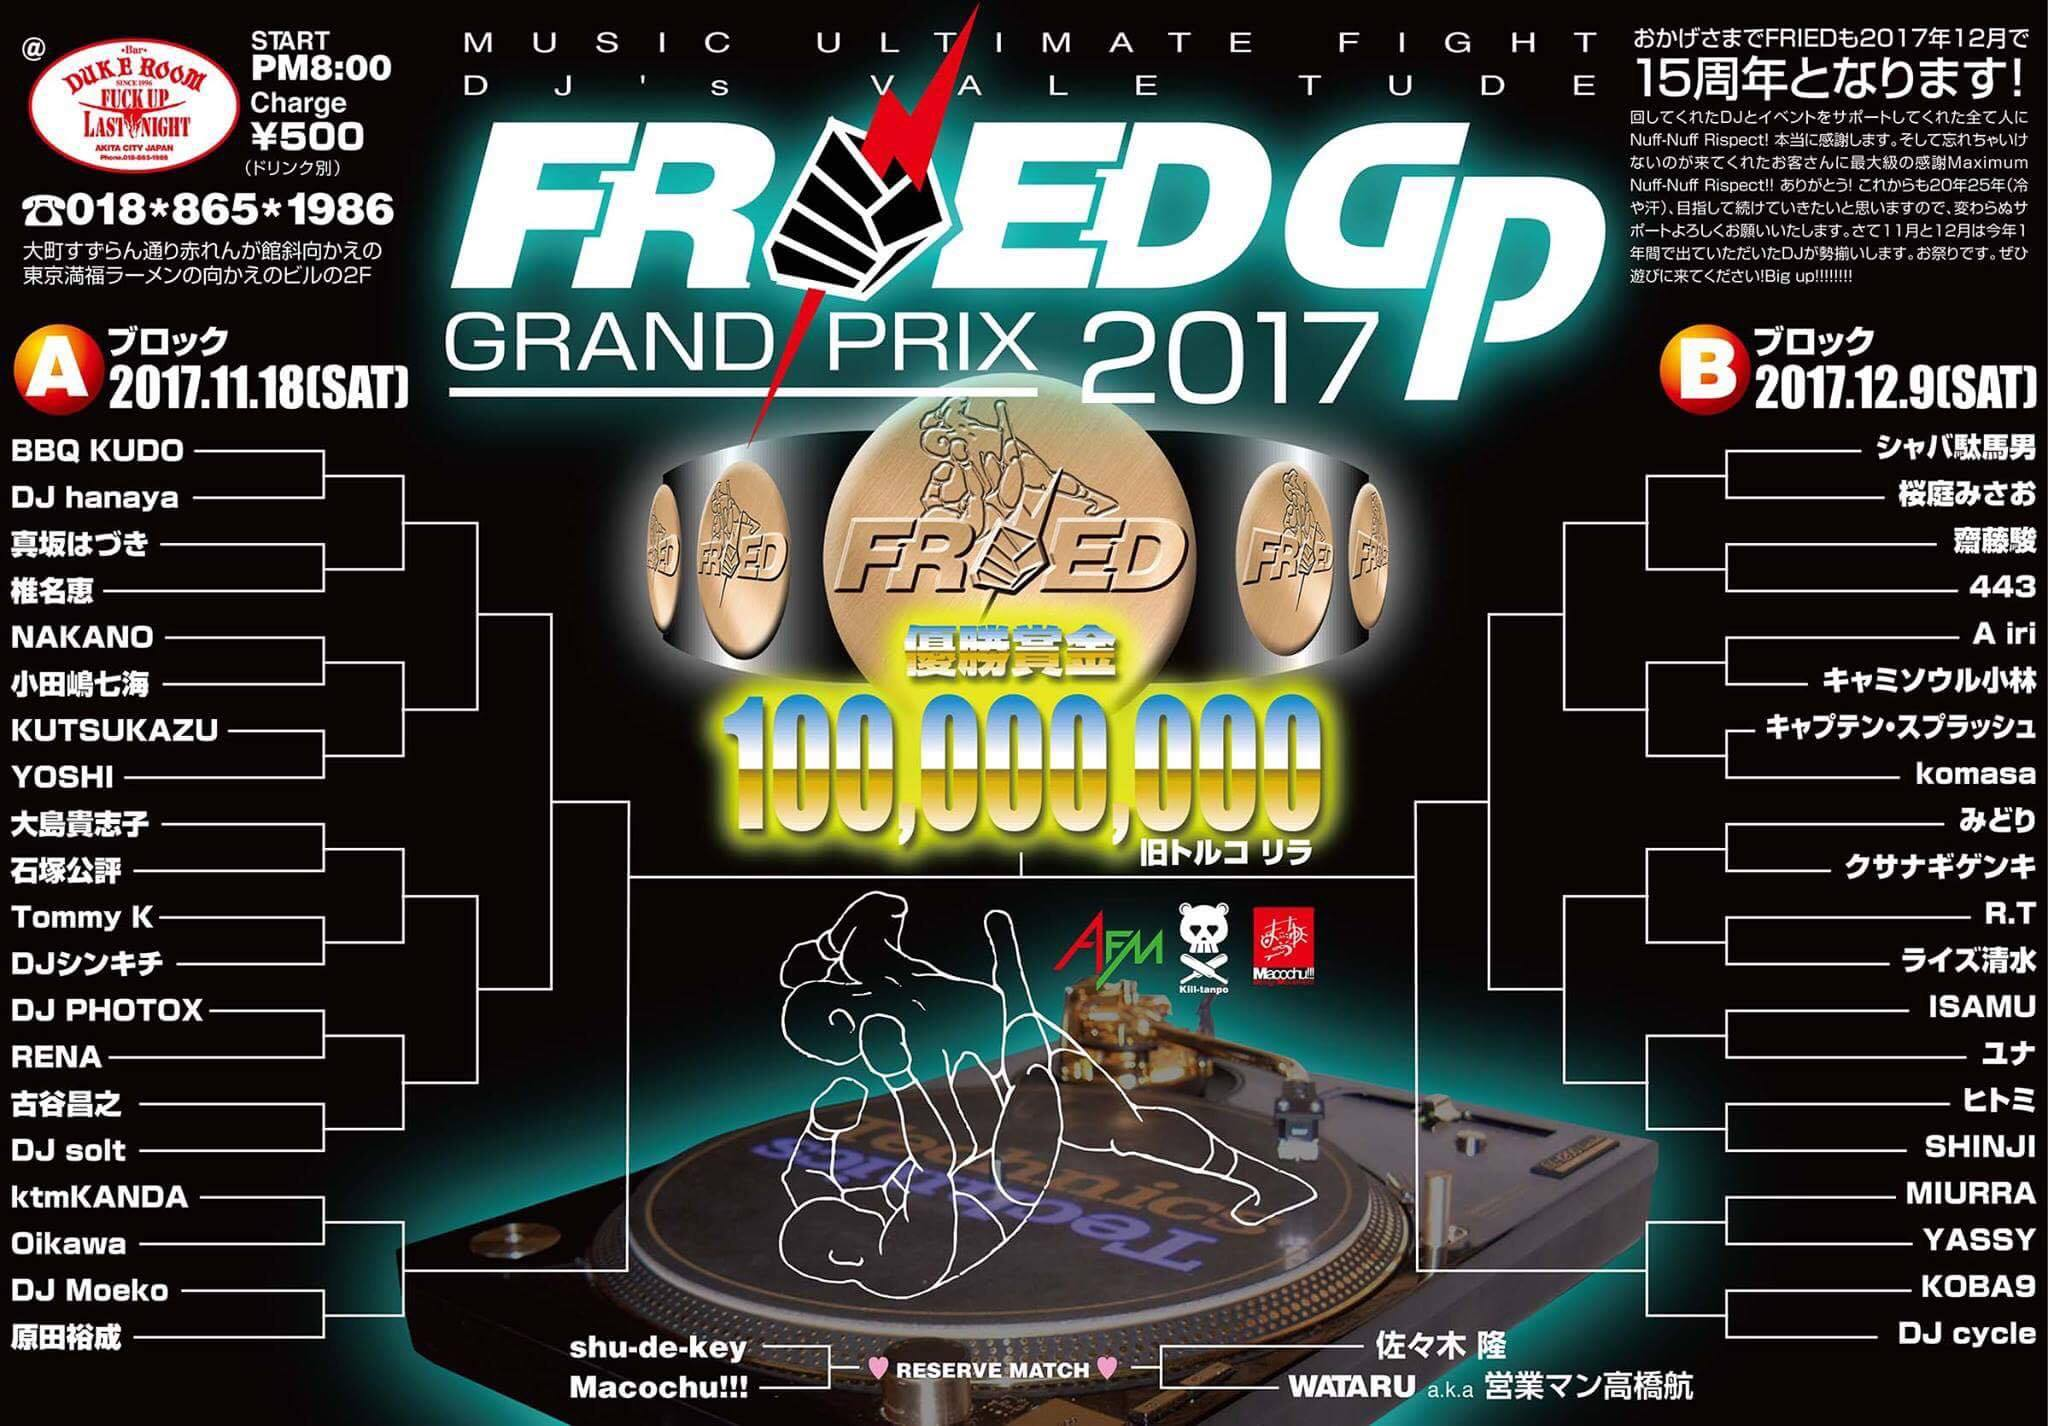 FRIED GP 2017